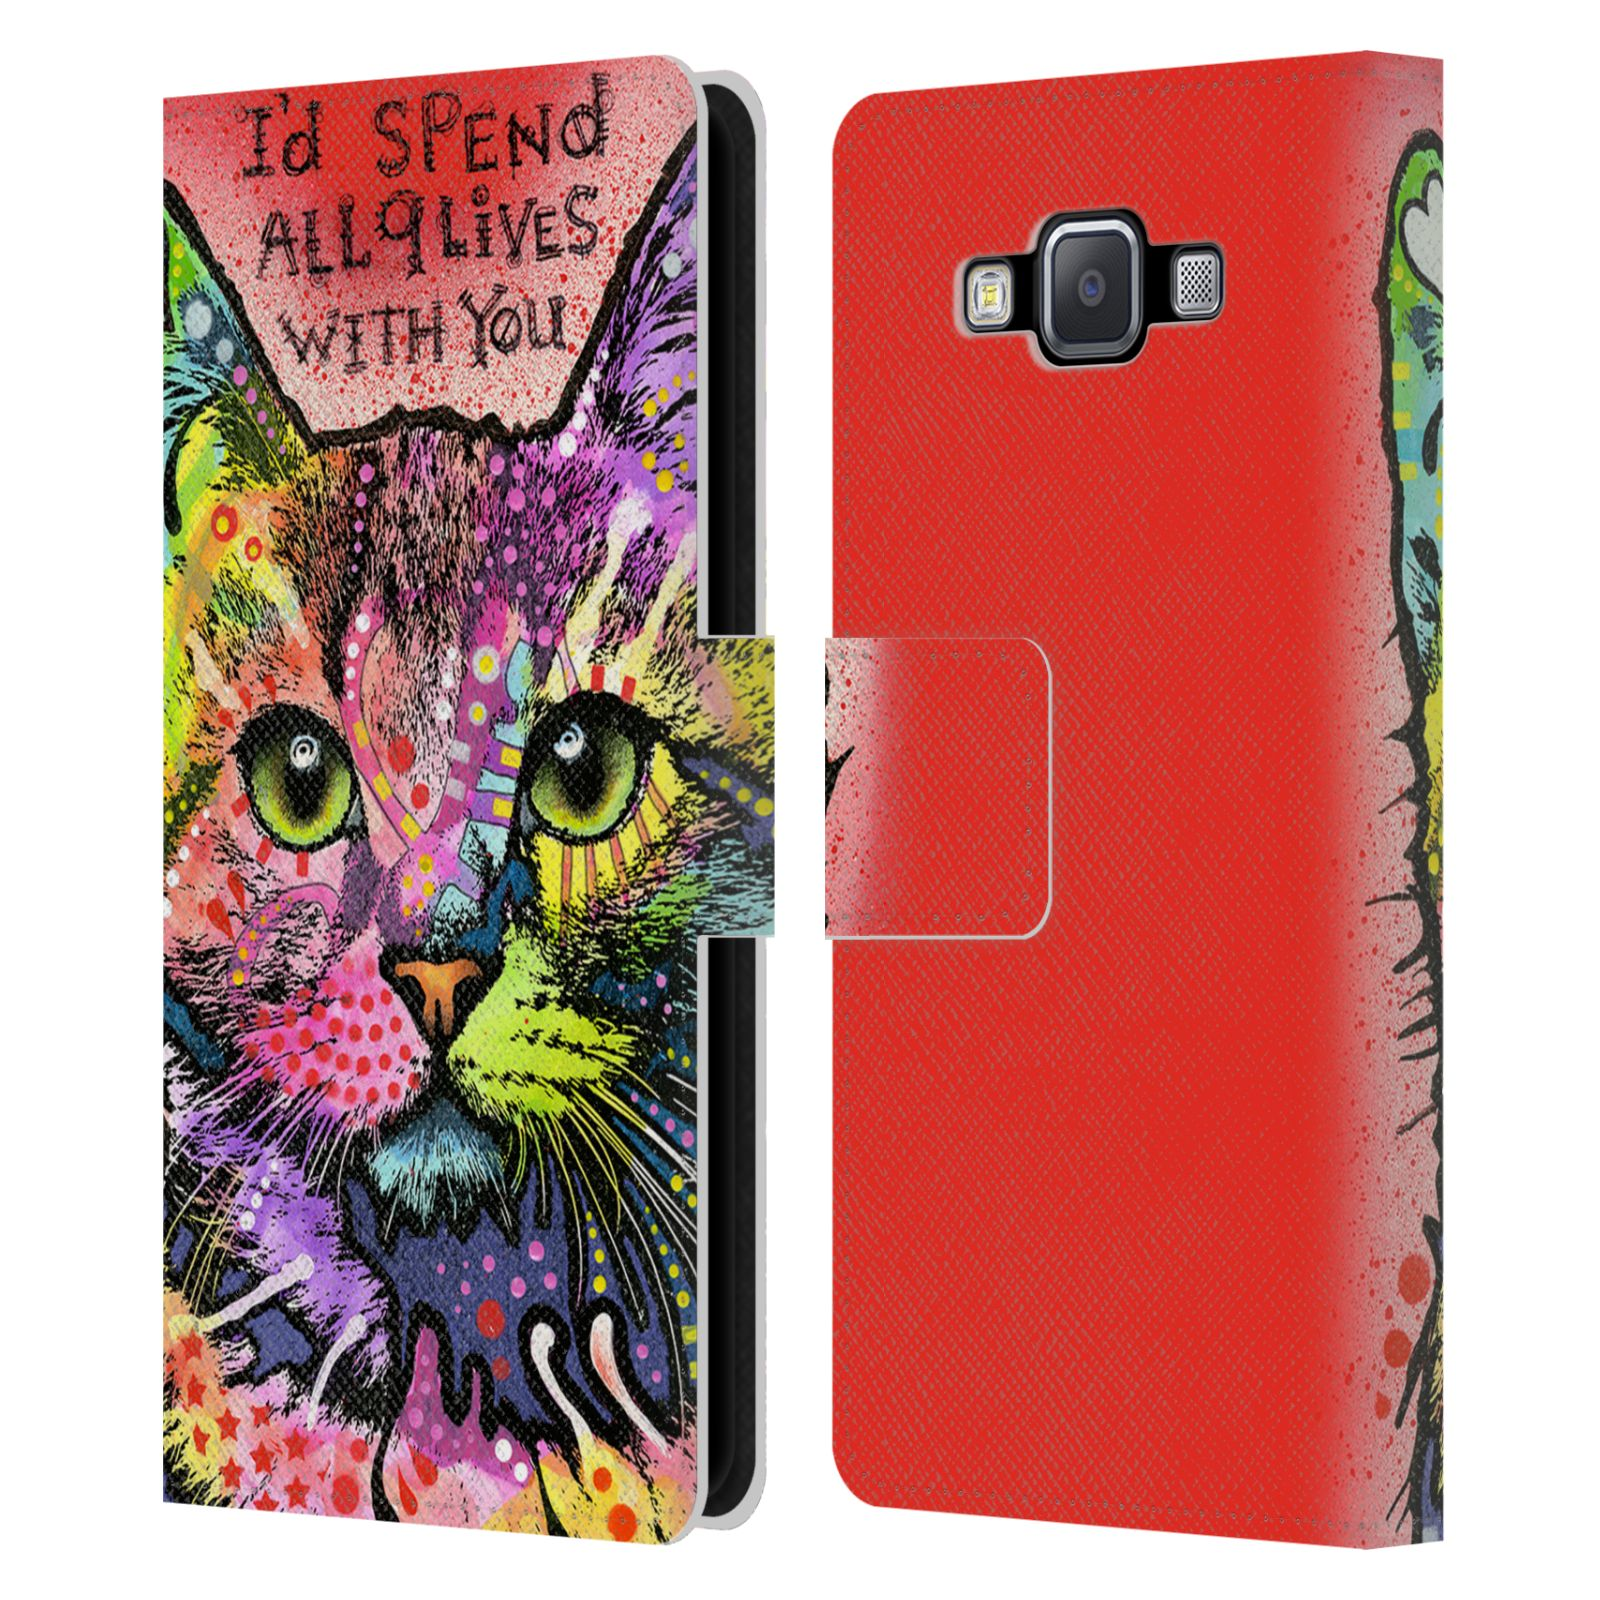 OFFICIAL-DEAN-RUSSO-CATS-2-LEATHER-BOOK-WALLET-CASE-COVER-FOR-SAMSUNG-PHONES-2